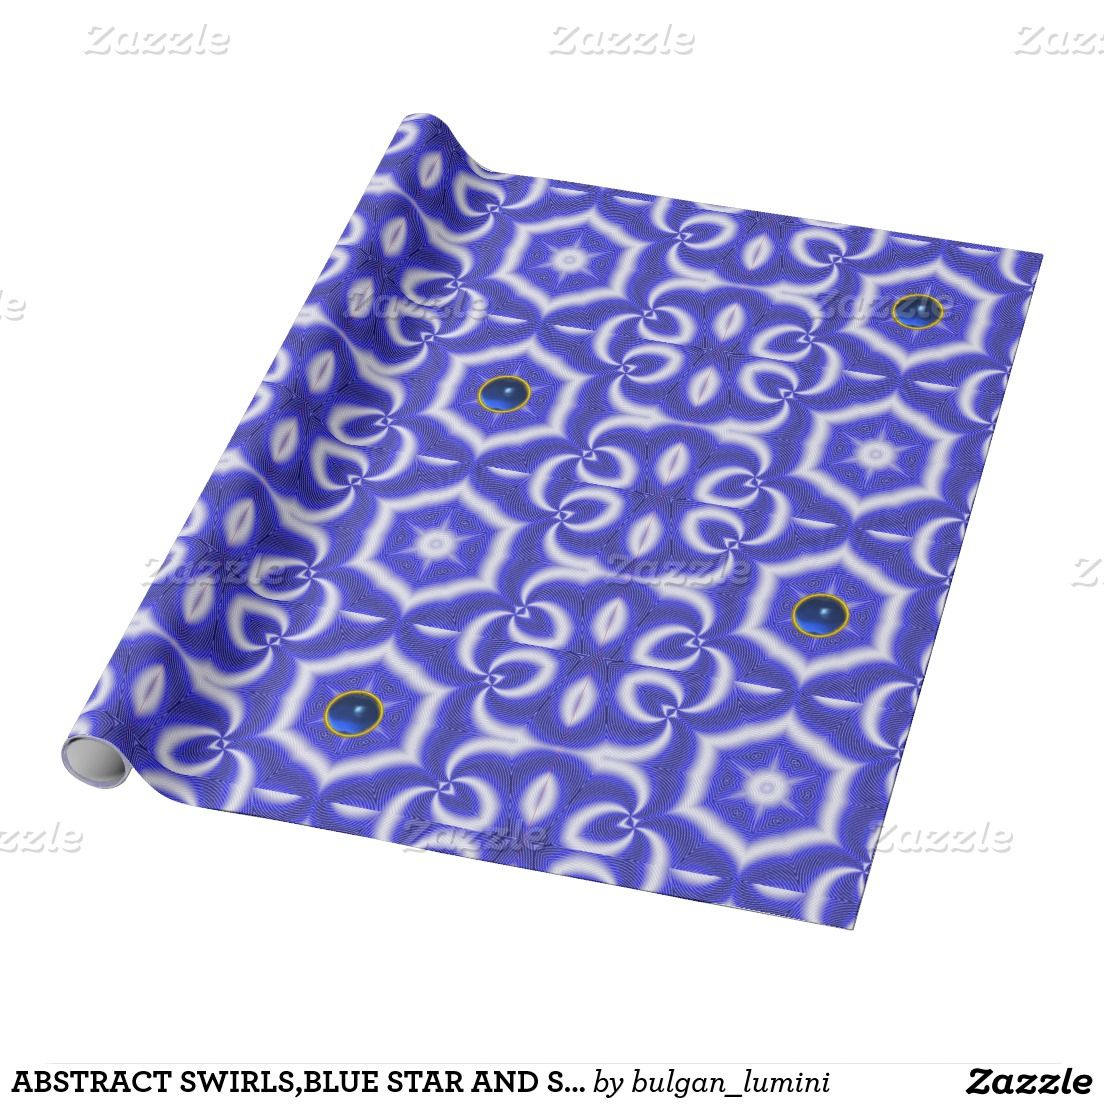 ABSTRACT SWIRLS,BLUE STAR AND SAPPHIRE GEMSTONE WRAPPING PAPER